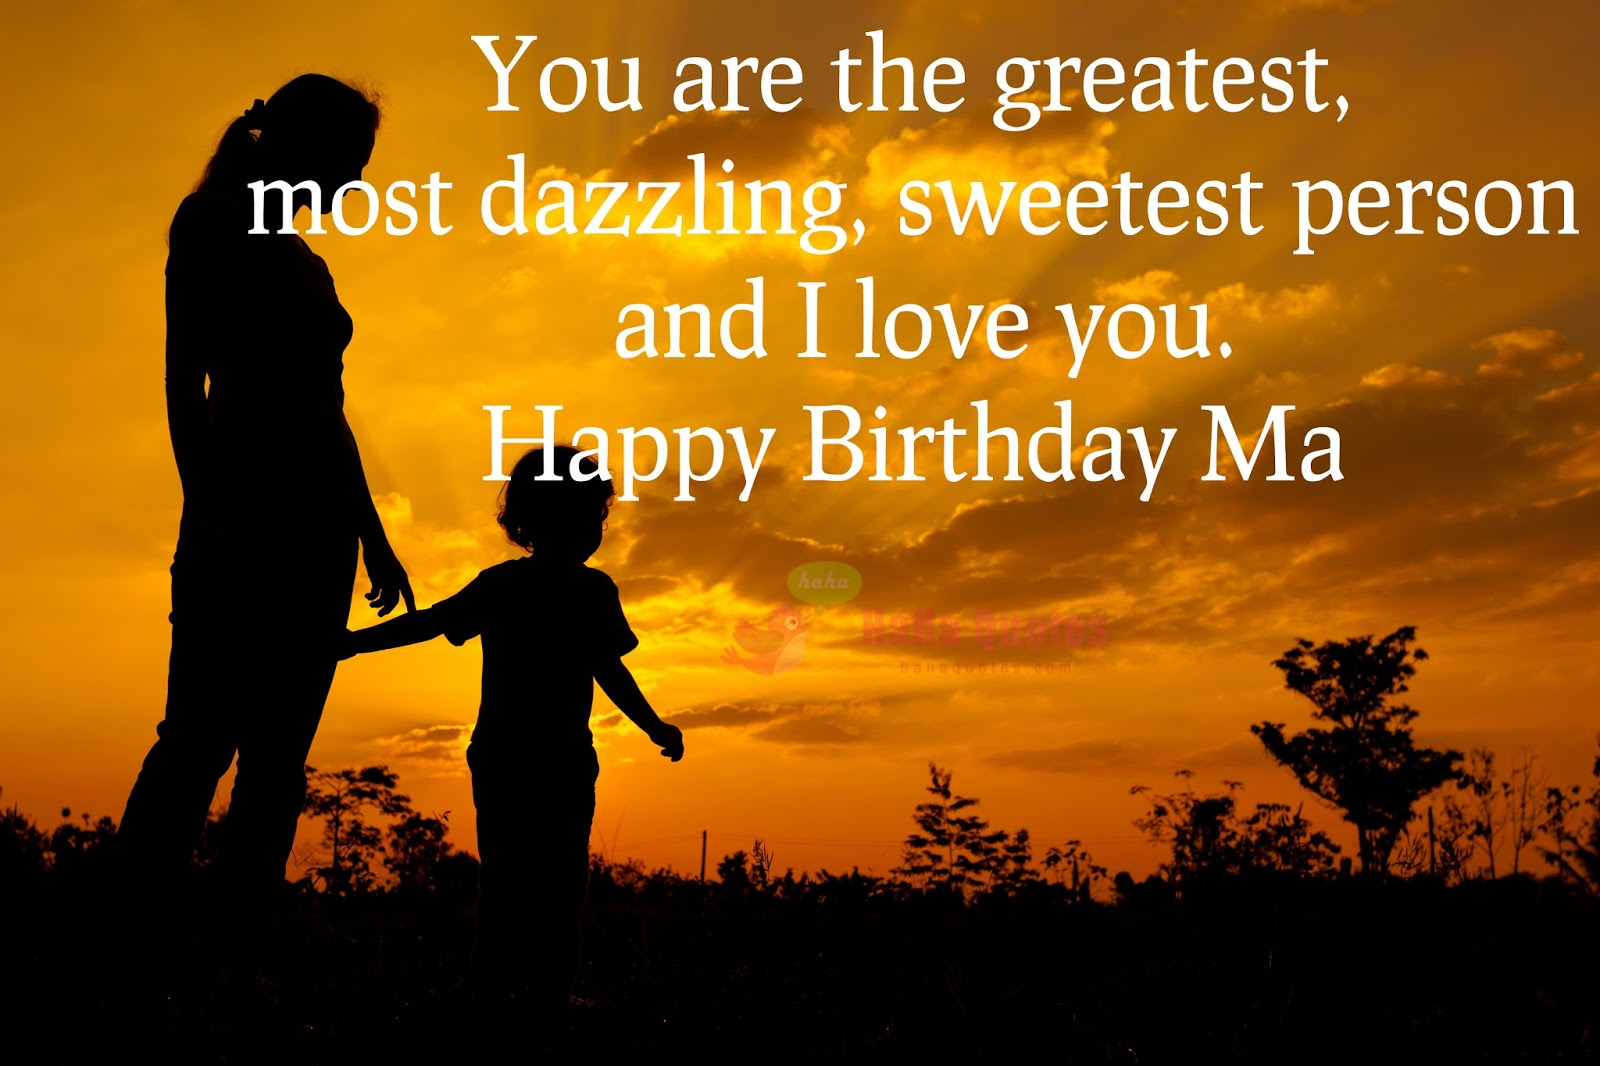 Mothers day greeting card wishes images from daughter and ...